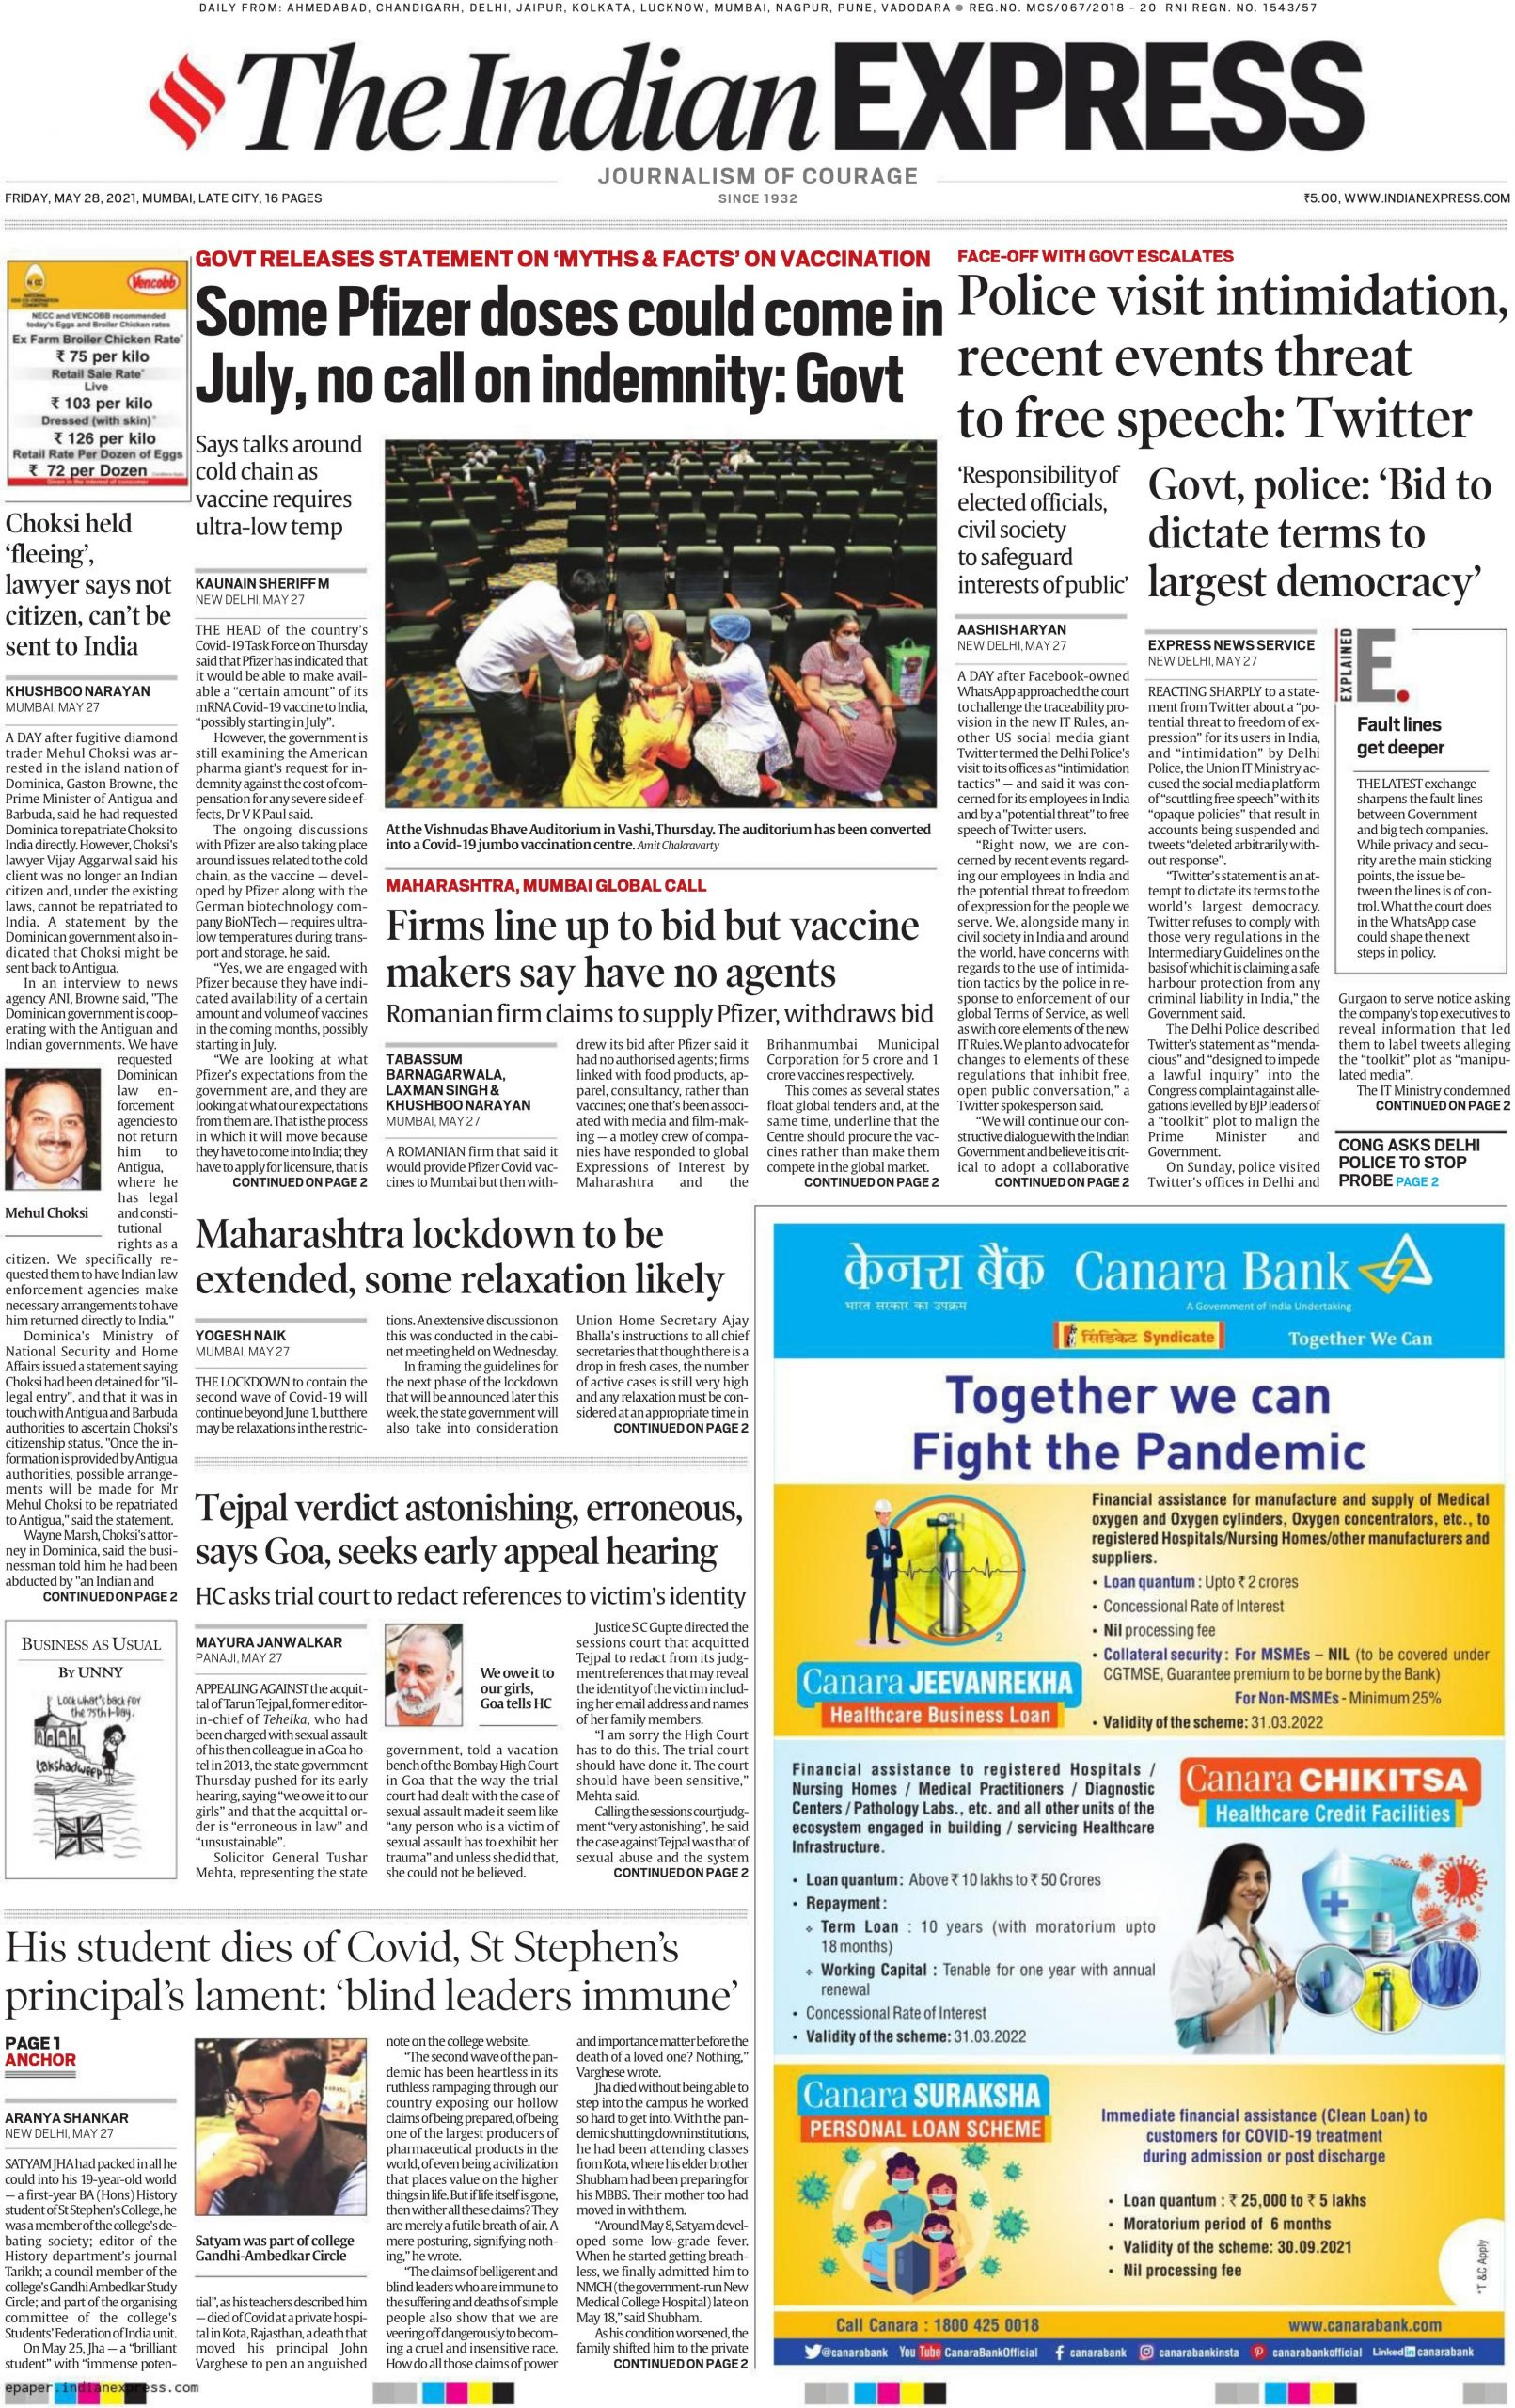 The Indian Express 29th may 2021